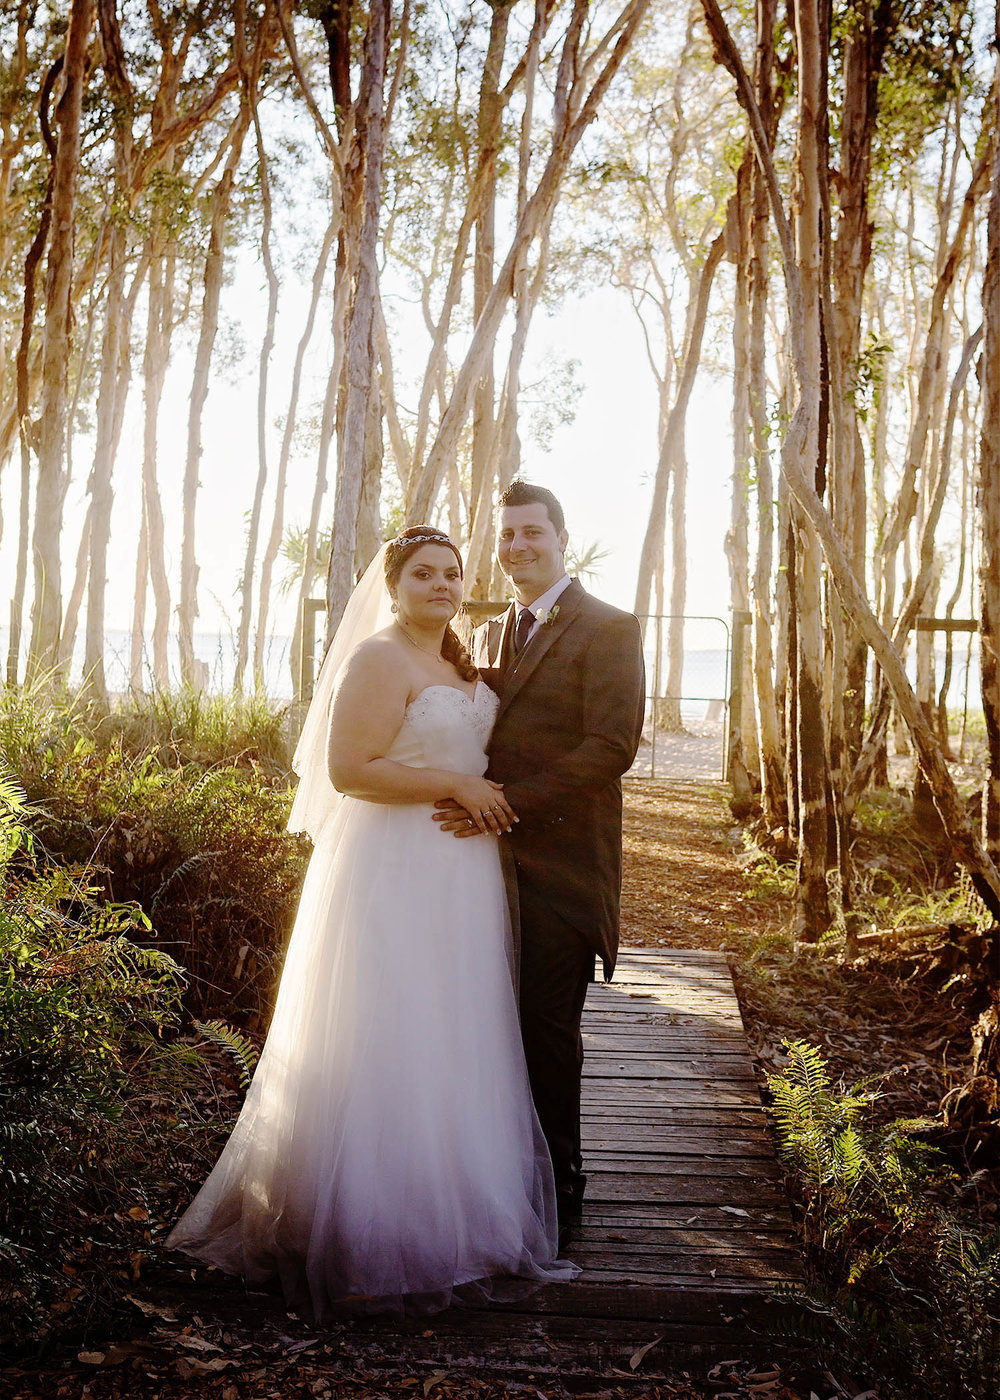 Classic Wedding @ Kingfisher Bay Resort, Fraser Island